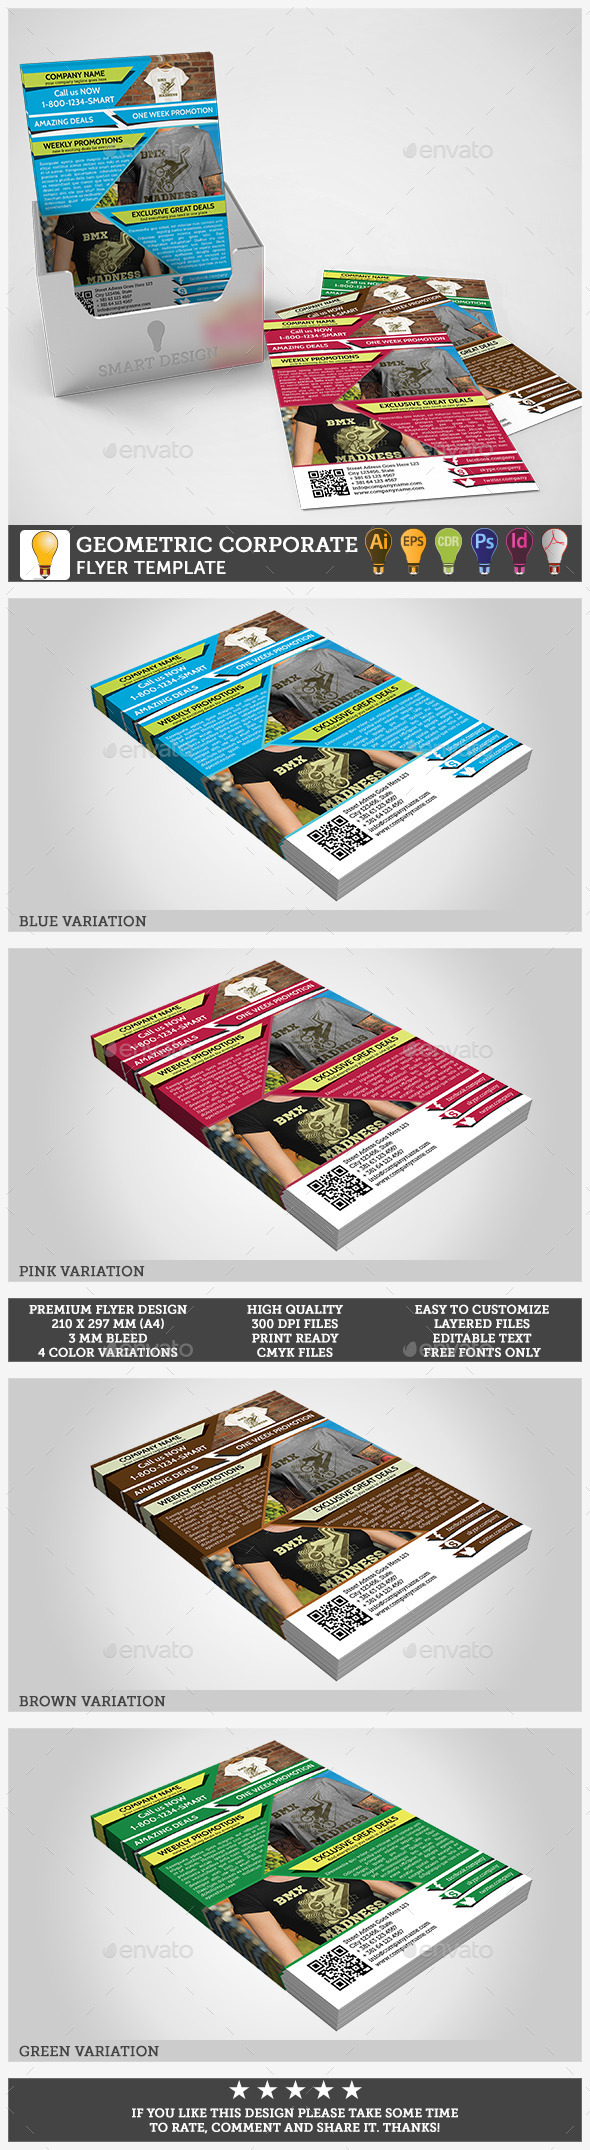 Corporate Business Flyer Geometric Template - Corporate Flyers